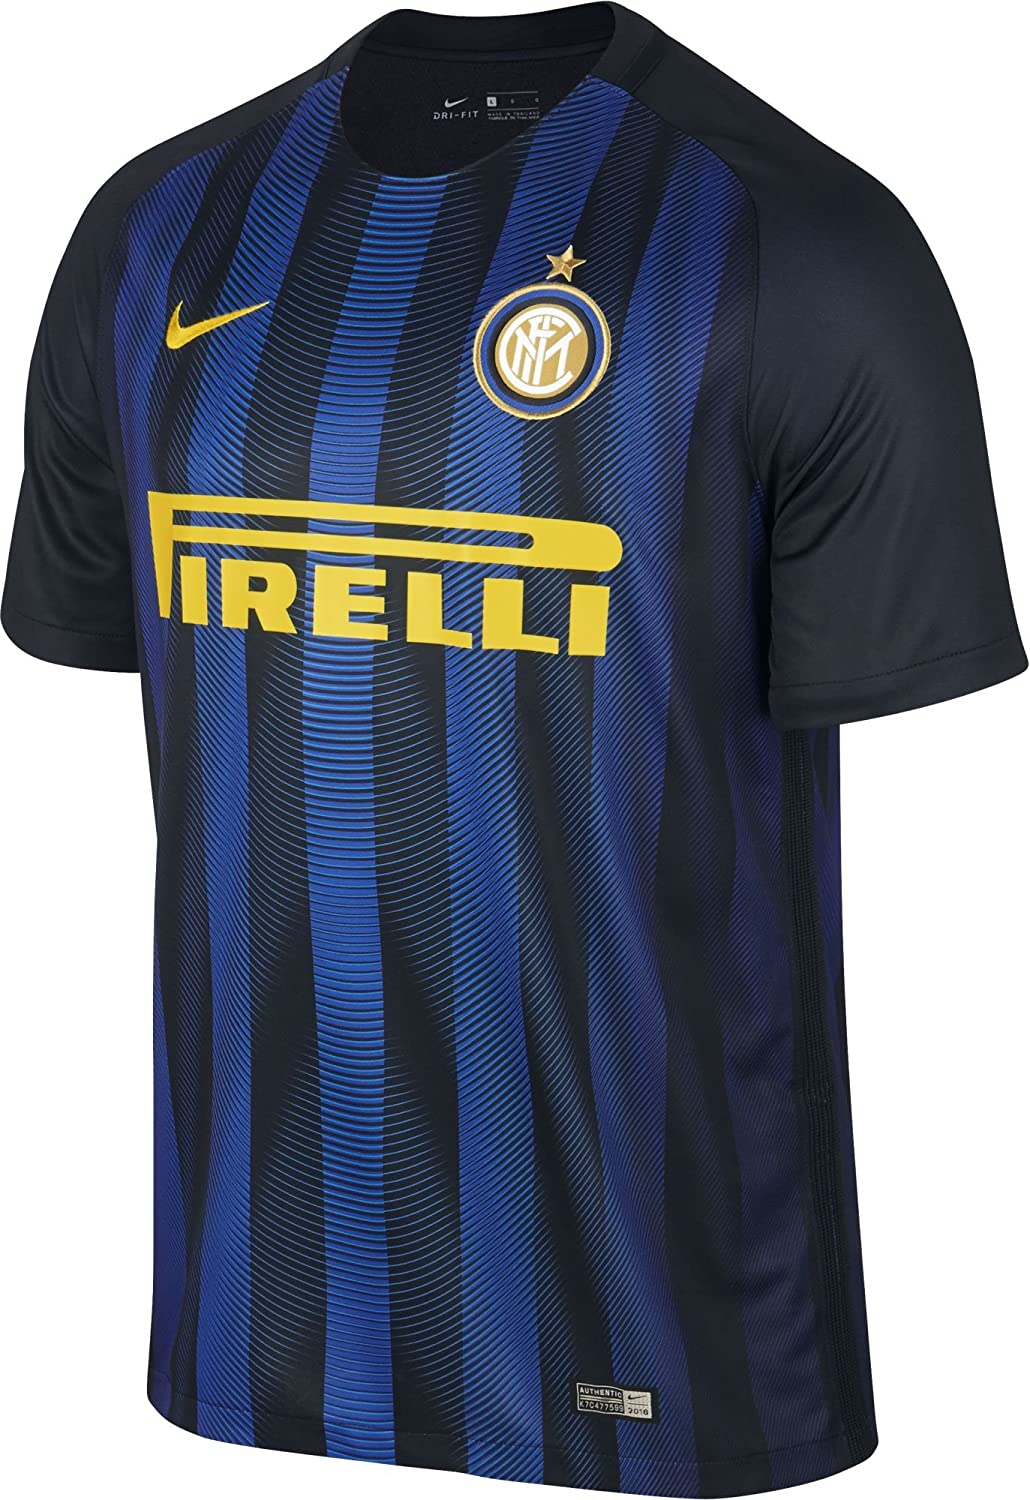 the best attitude e3dbc 55899 NIKE Mens FC Inter Milan Stadium Jersey-Black